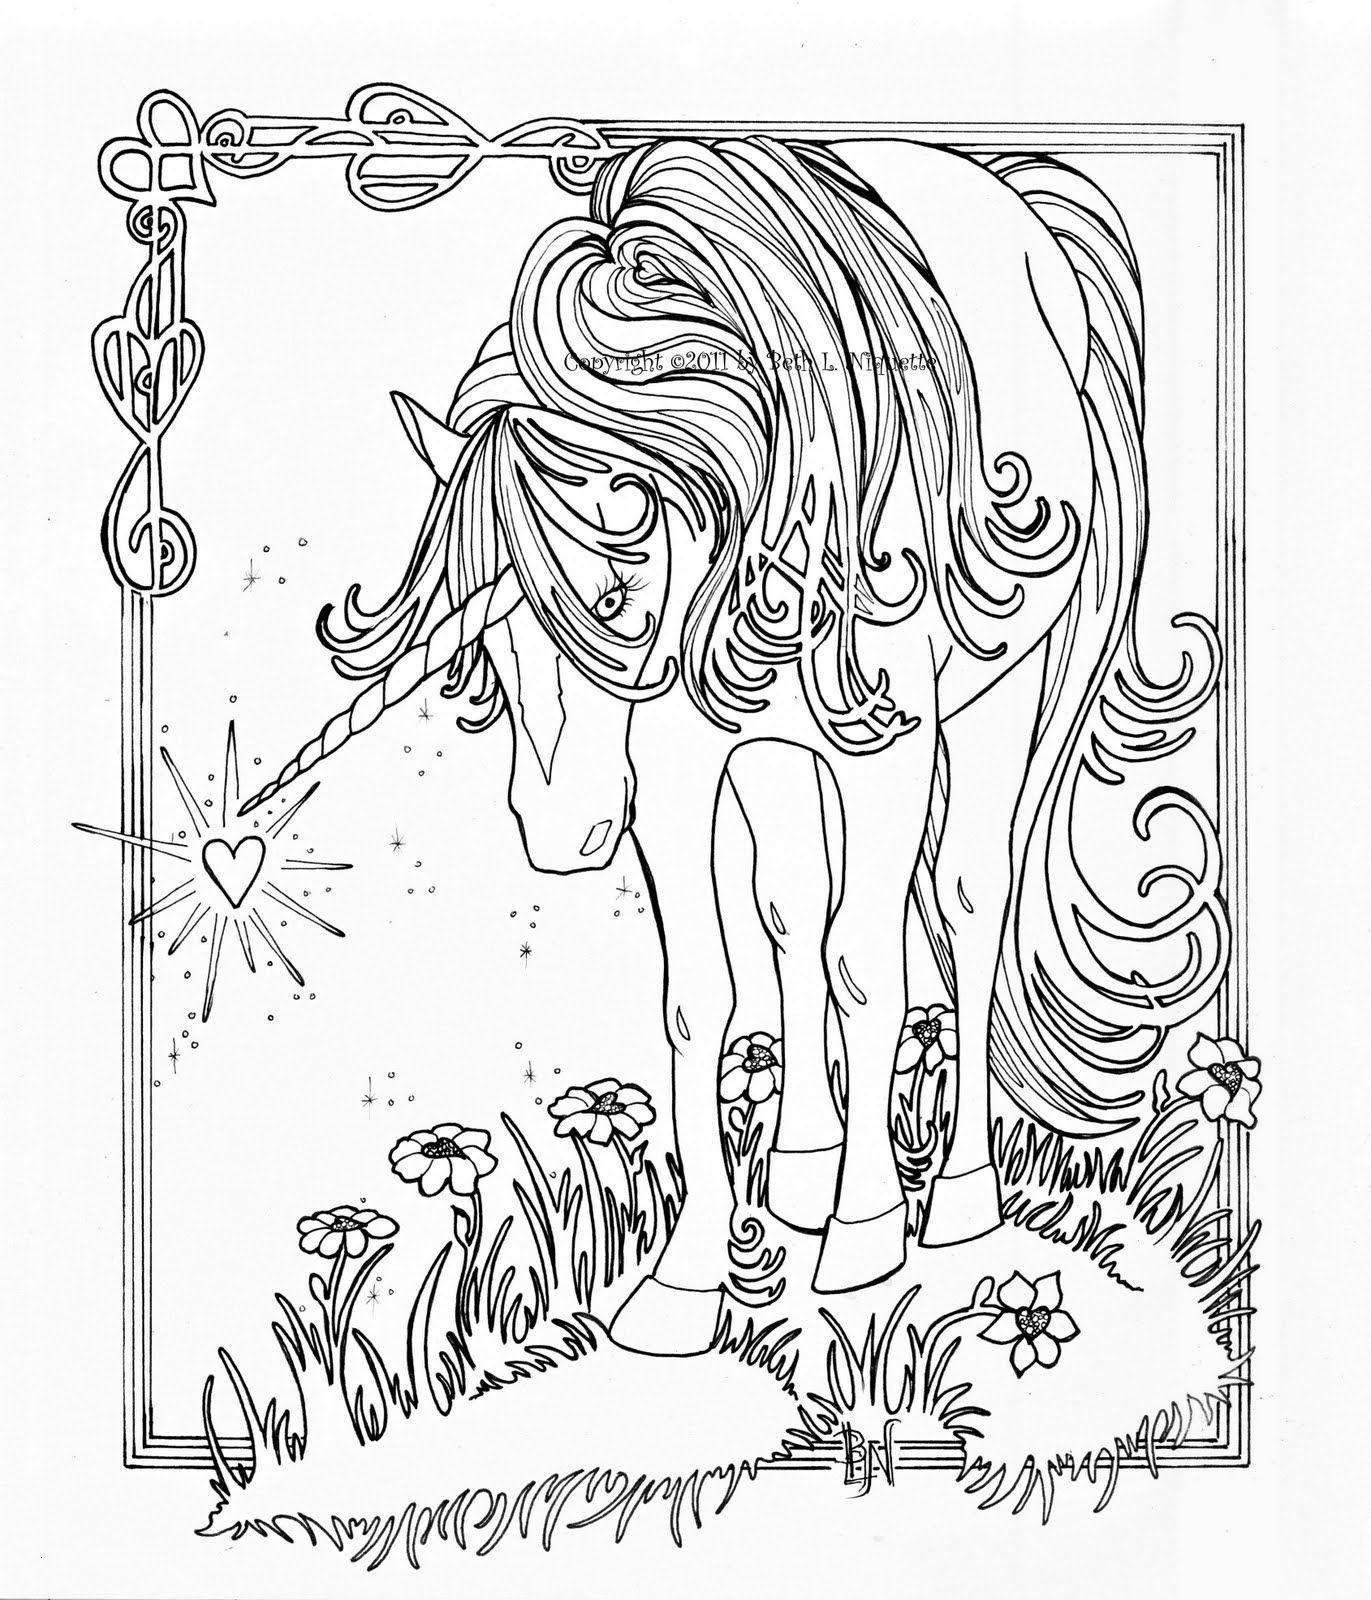 Mia and Me Malvorlagen Neu Mia and Me Coloring Pages Fresh Ausmalbilder Kostenlos Mia and Me Bilder